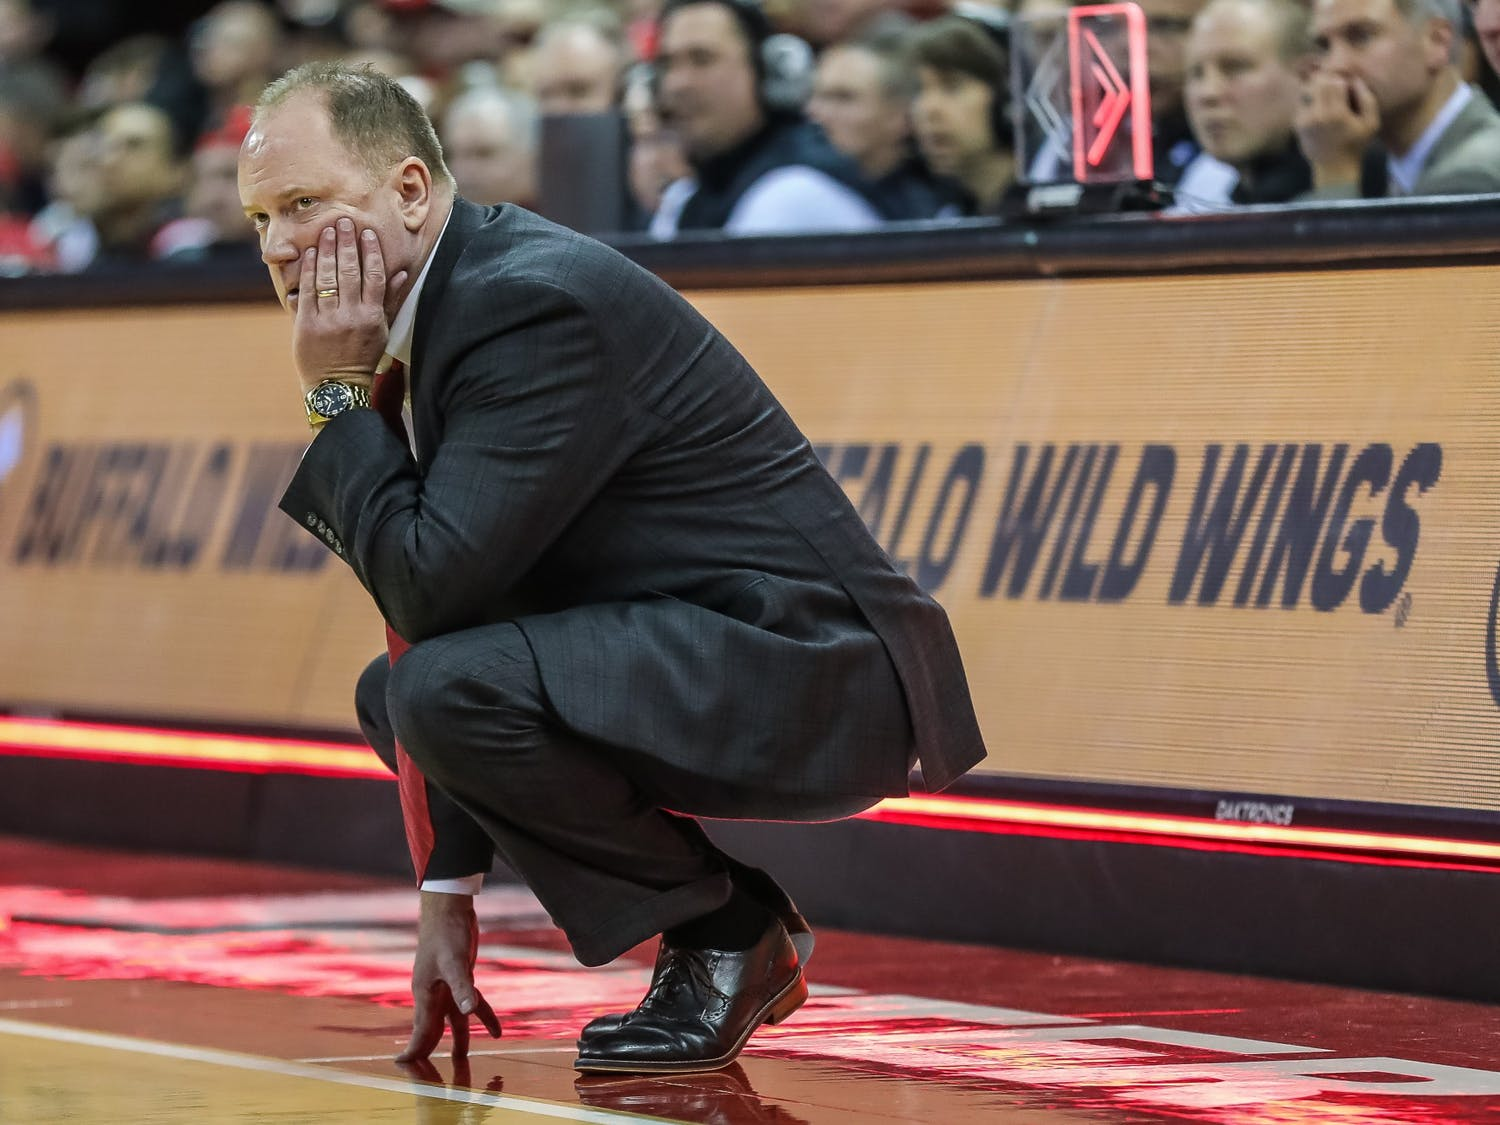 Head coach Greg Gard wasn't happy with the Badgers performance Monday night after letting Maryland make 11 of their last 12 field goal attempts.